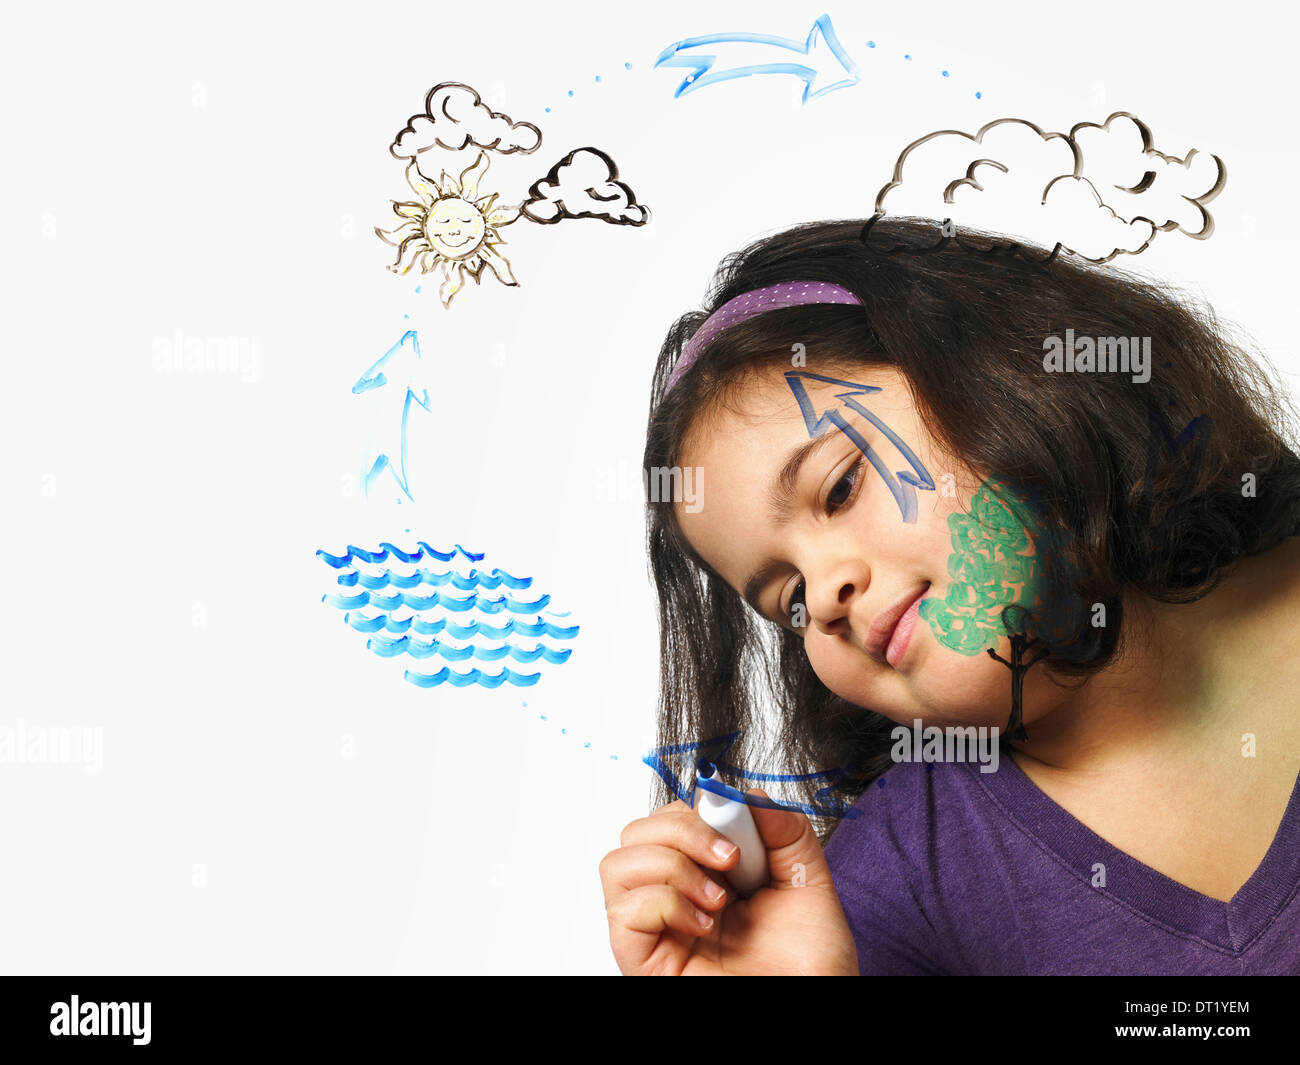 A young girl drawing the water evaporation cycle on a clear see through surface with a market pen - Stock Image